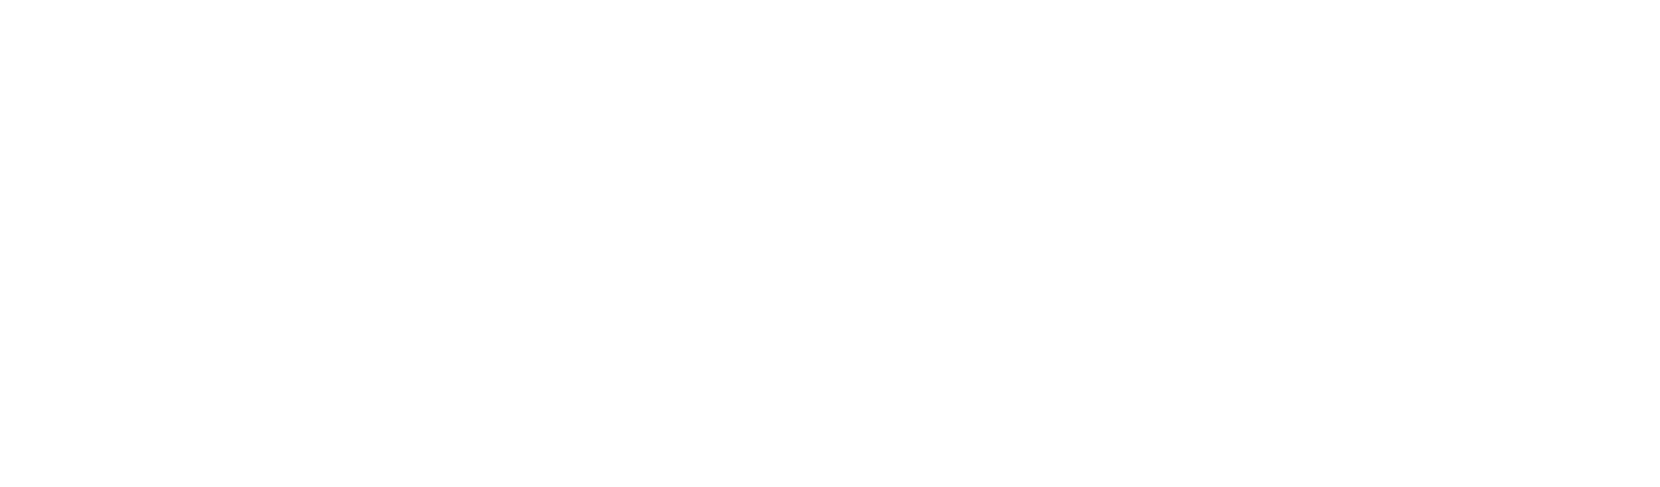 Environmental Defenders Office